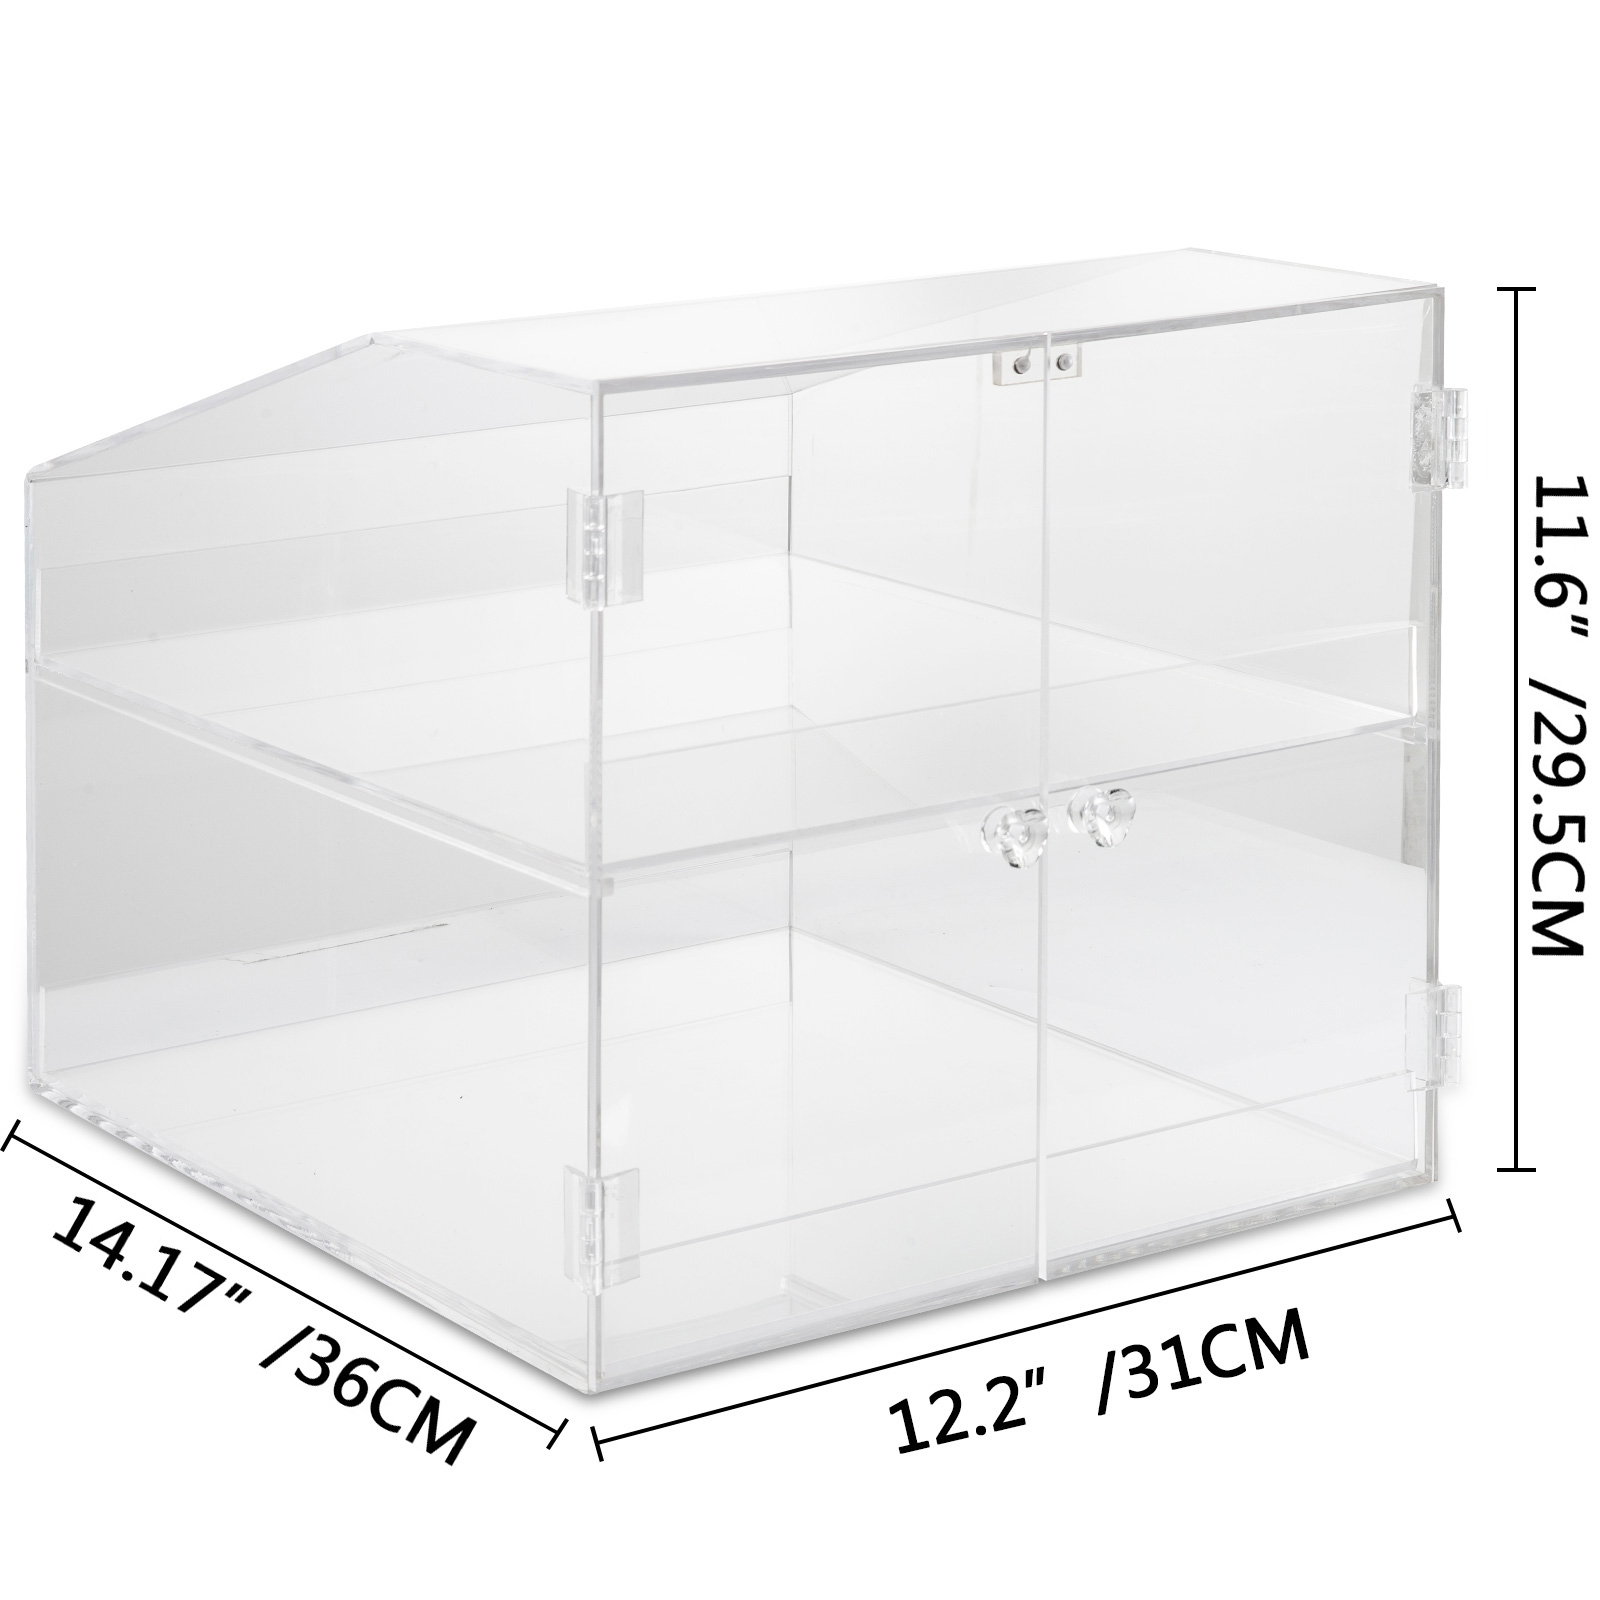 thumbnail 56 - 2-3-4-Shelves-Acrylic-Display-Cabinet-Glued-Unassembled-Bakery-Clear-Pastry